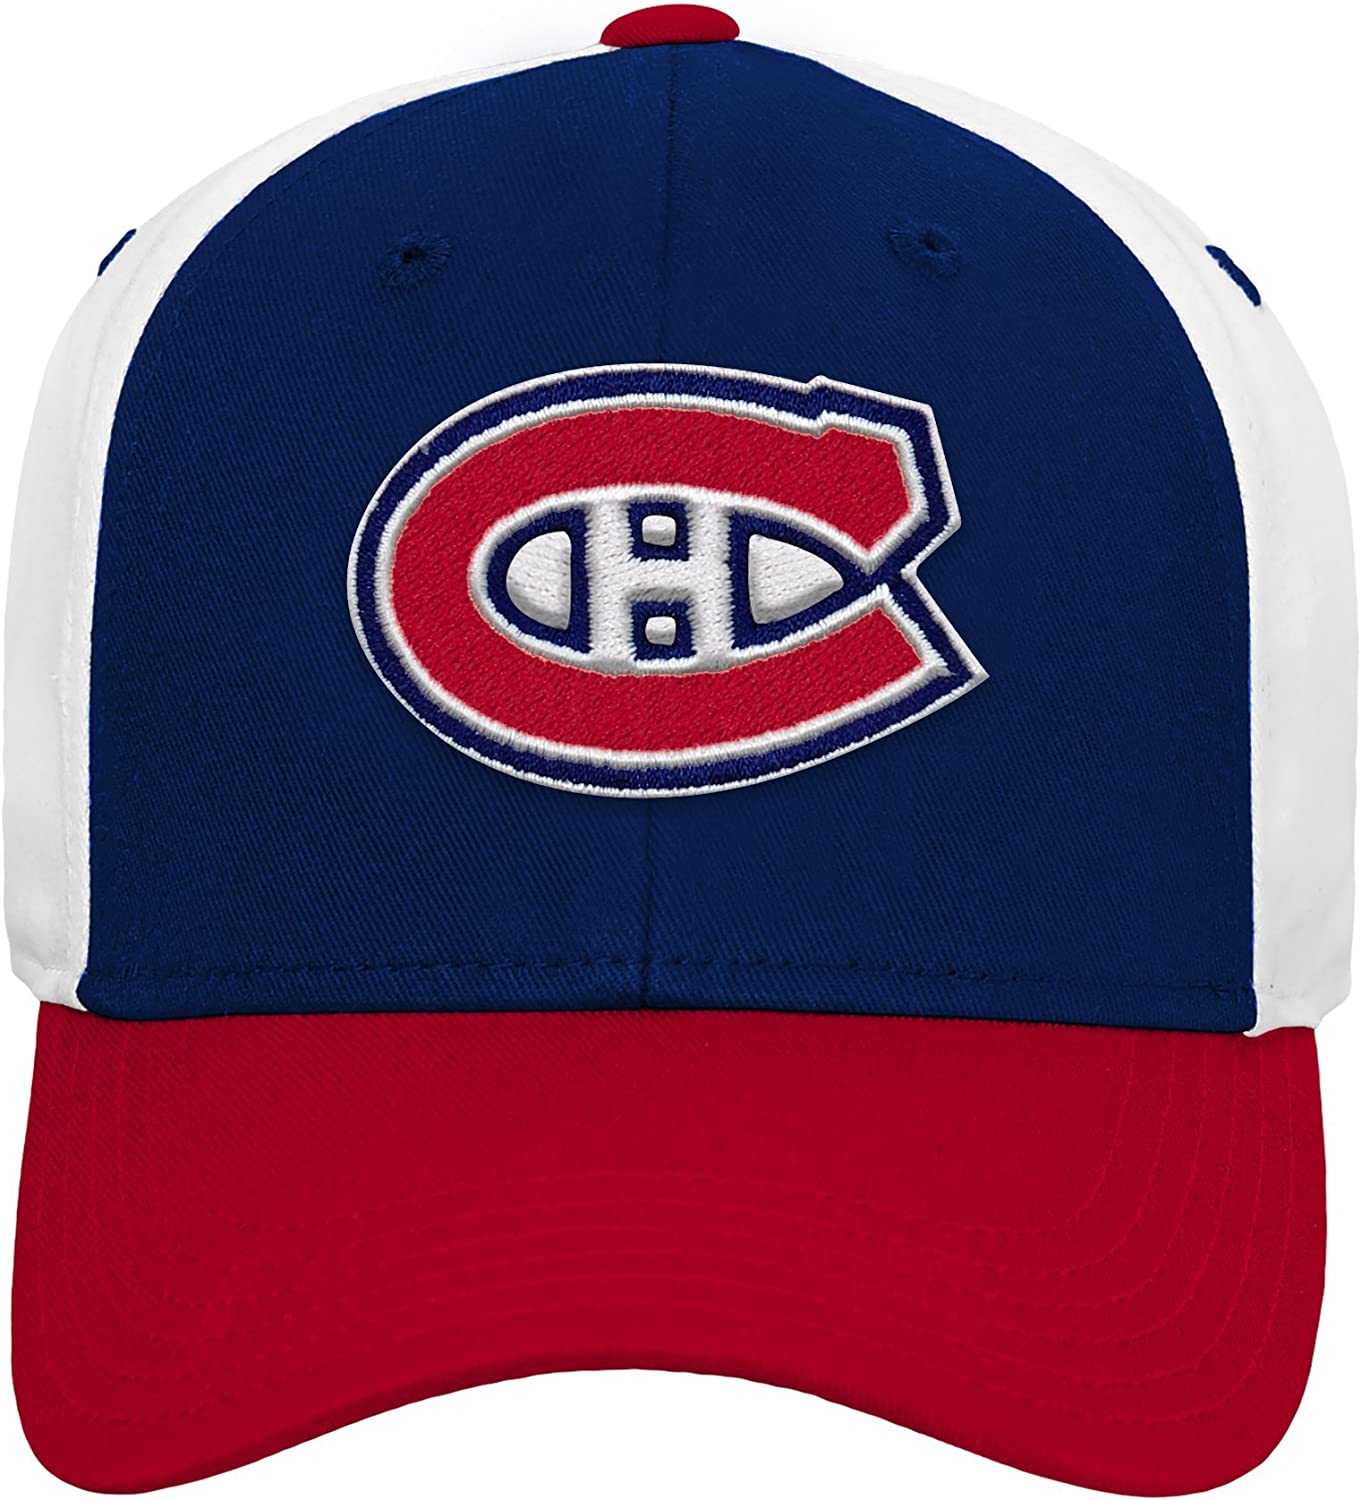 NHL by Outerstuff Boys Big Colorblock Structured Adjustable Hat